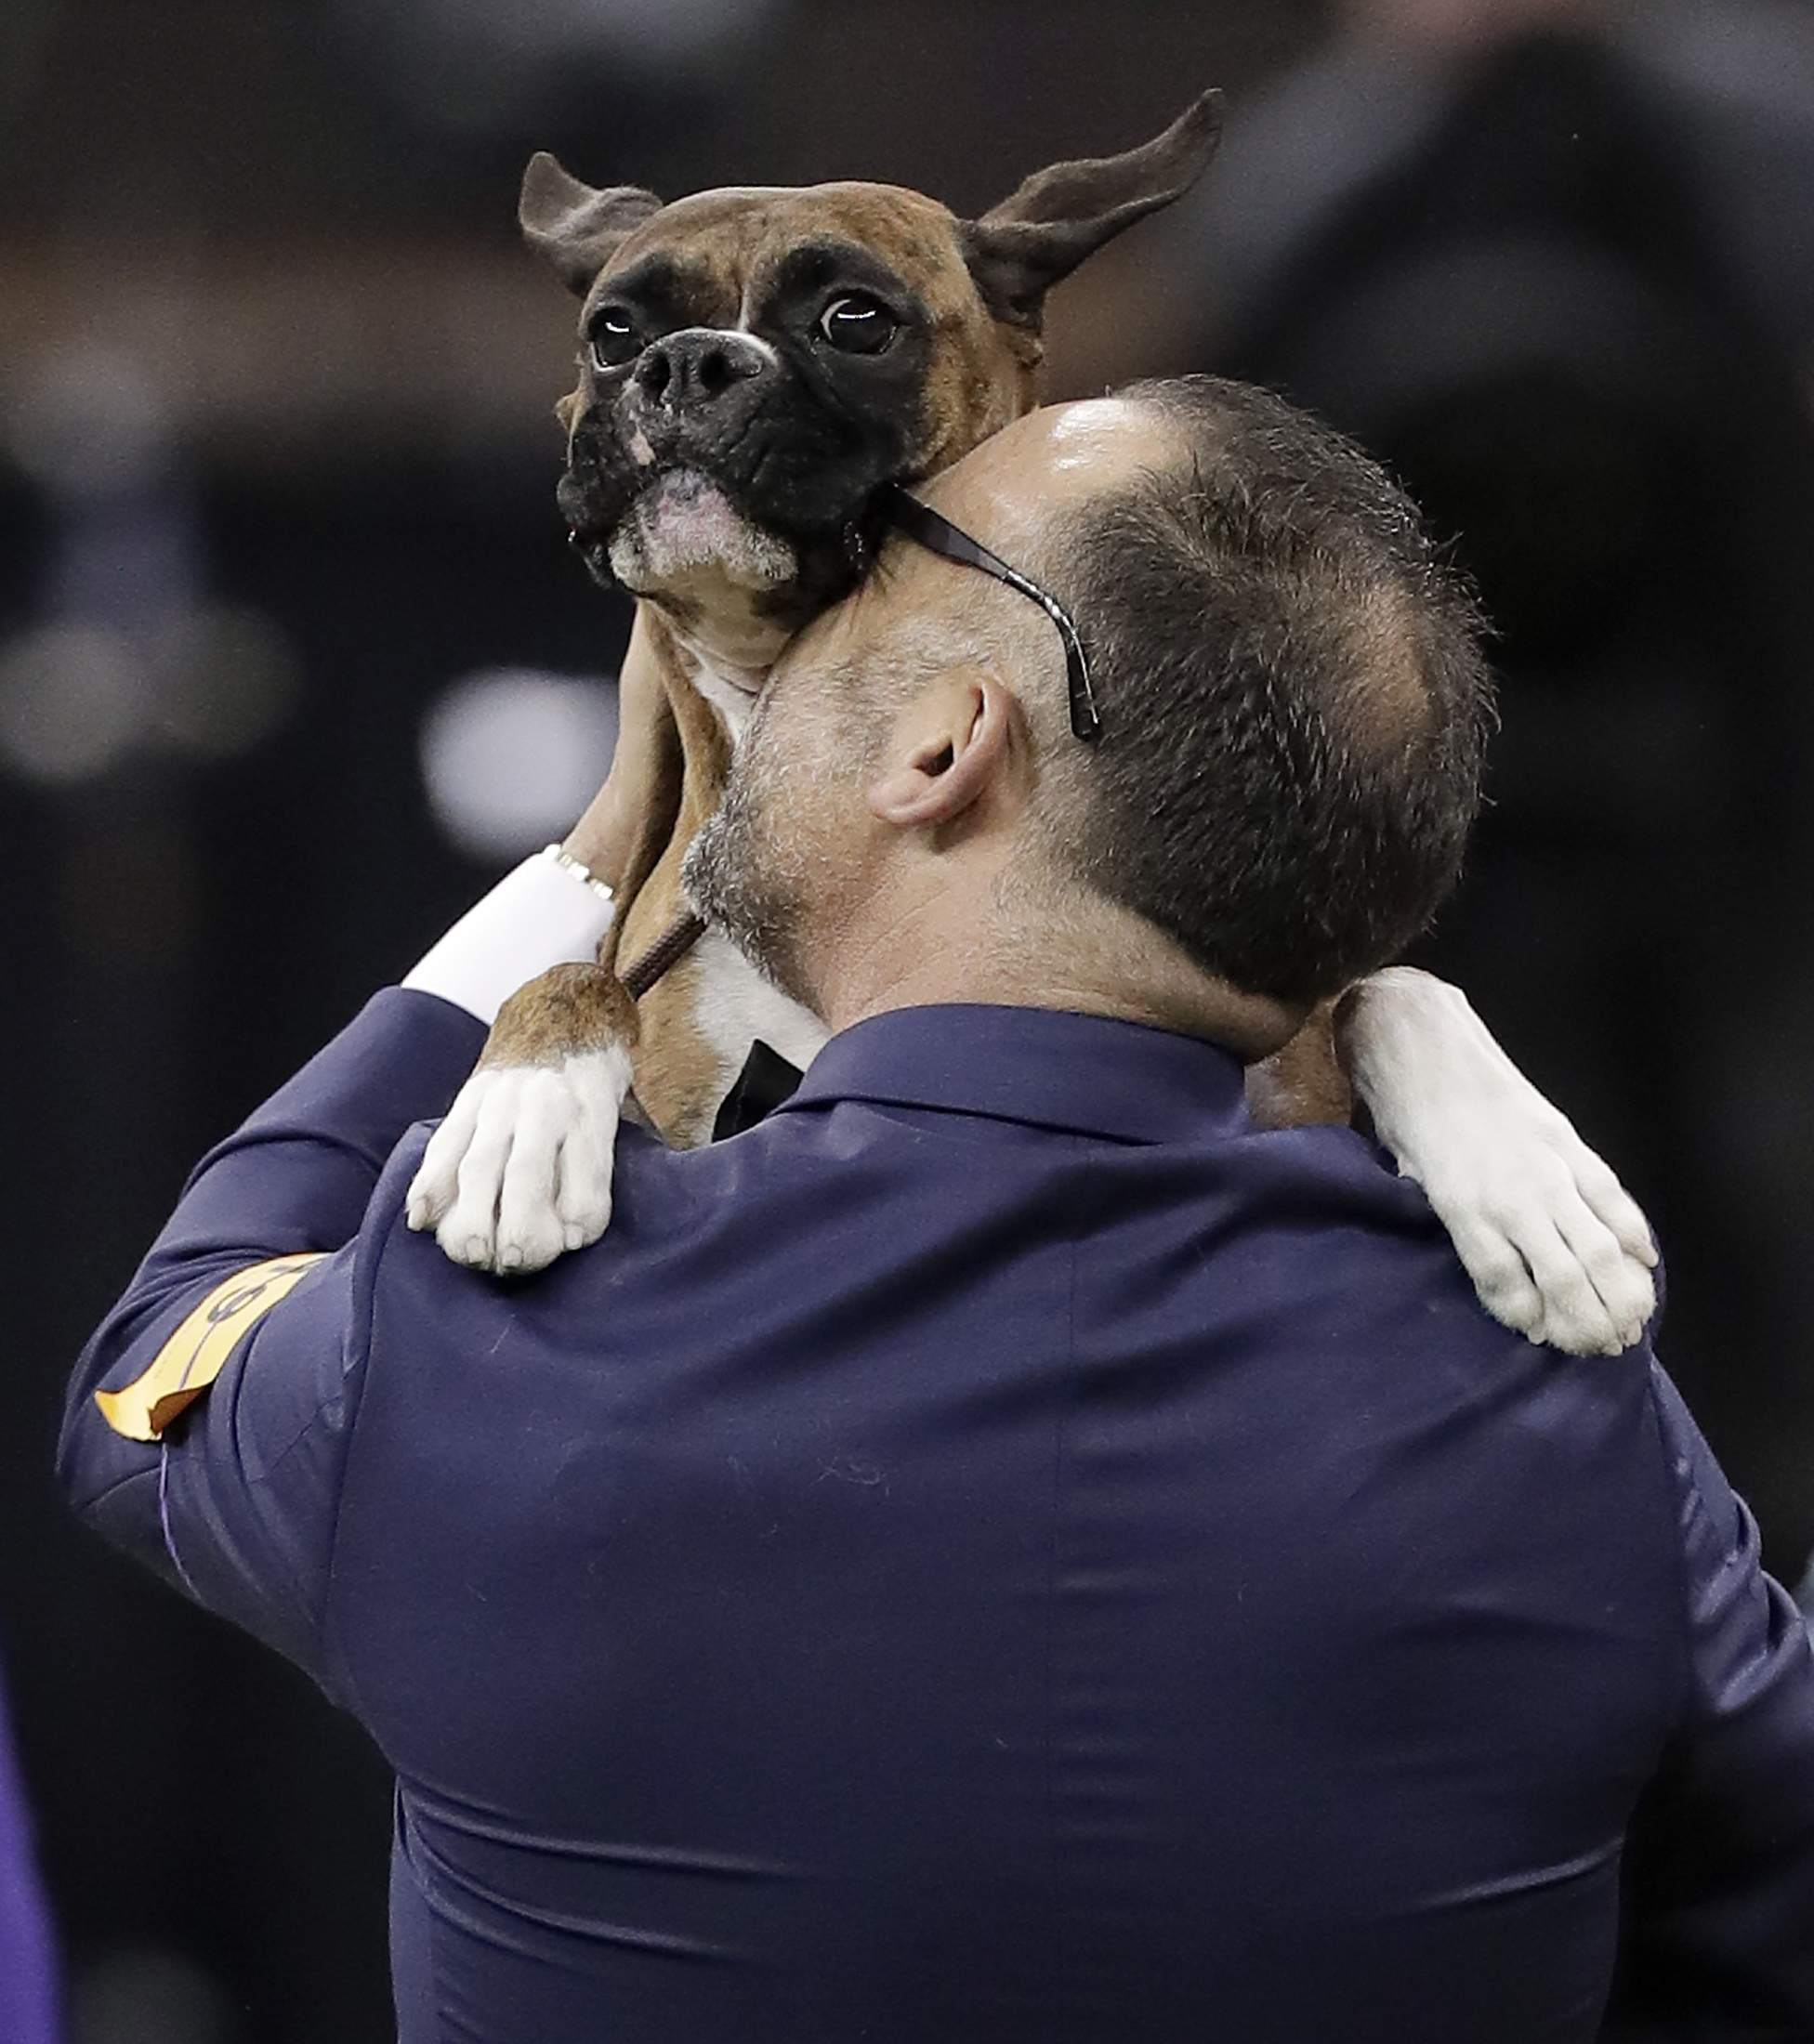 Handler Diego Garcia lifts up boxer Devlin after she won the working group competition during the 141st Westminster Kennel Club Dog Show, Tuesday, Feb. 14, 2017, in New York. THE ASSOCIATED PRESS